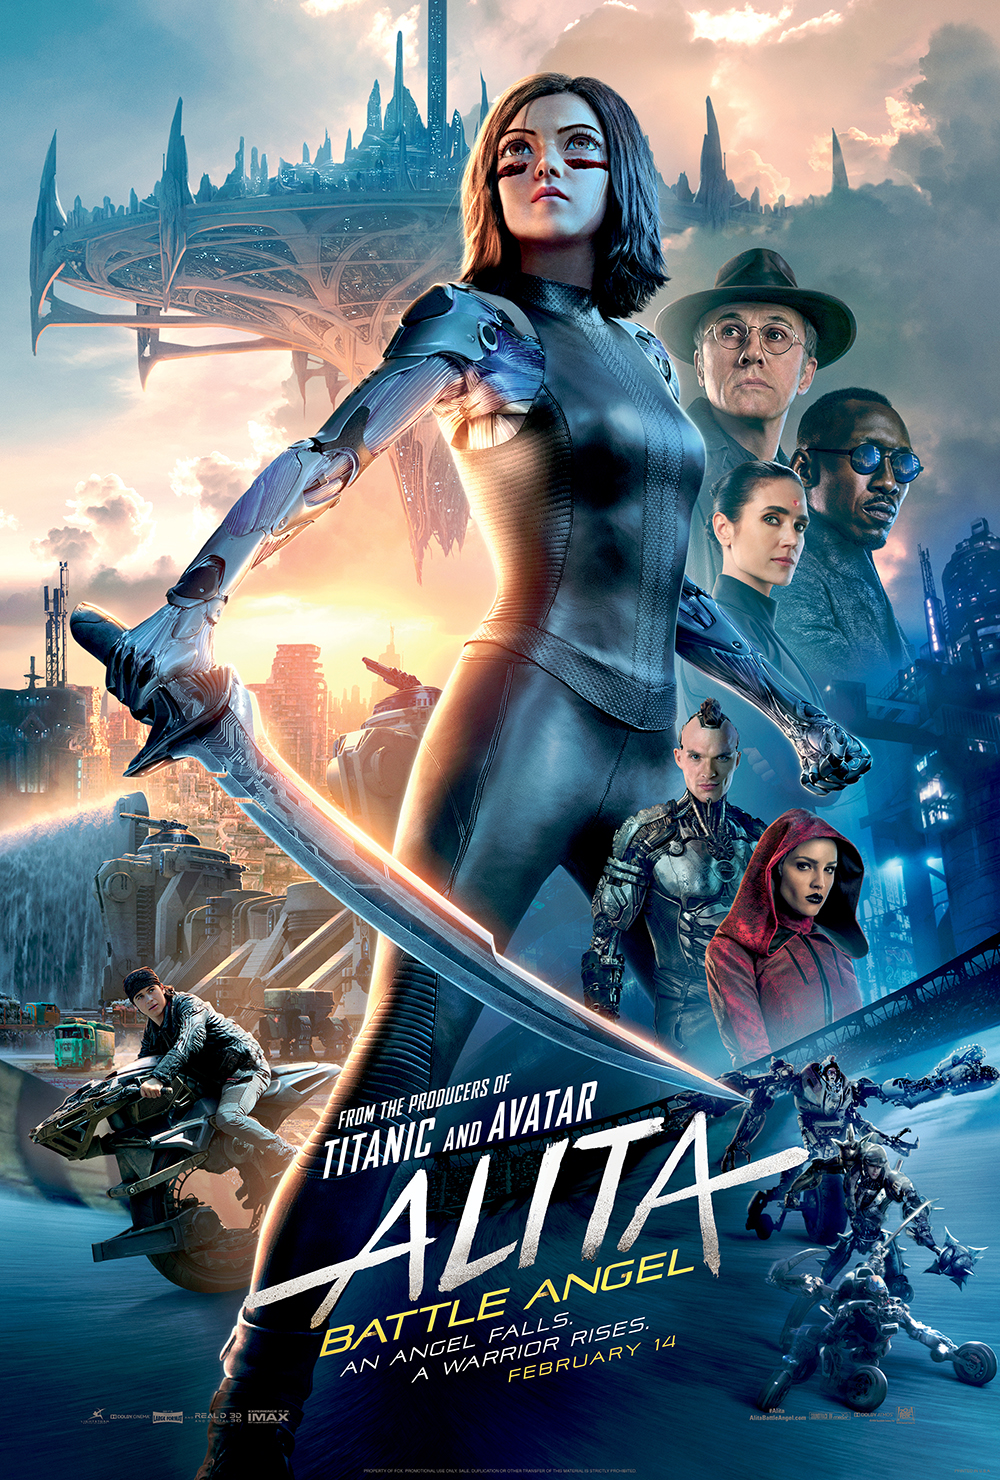 Alita-battle-angel-3d-3-d-movie.jpg